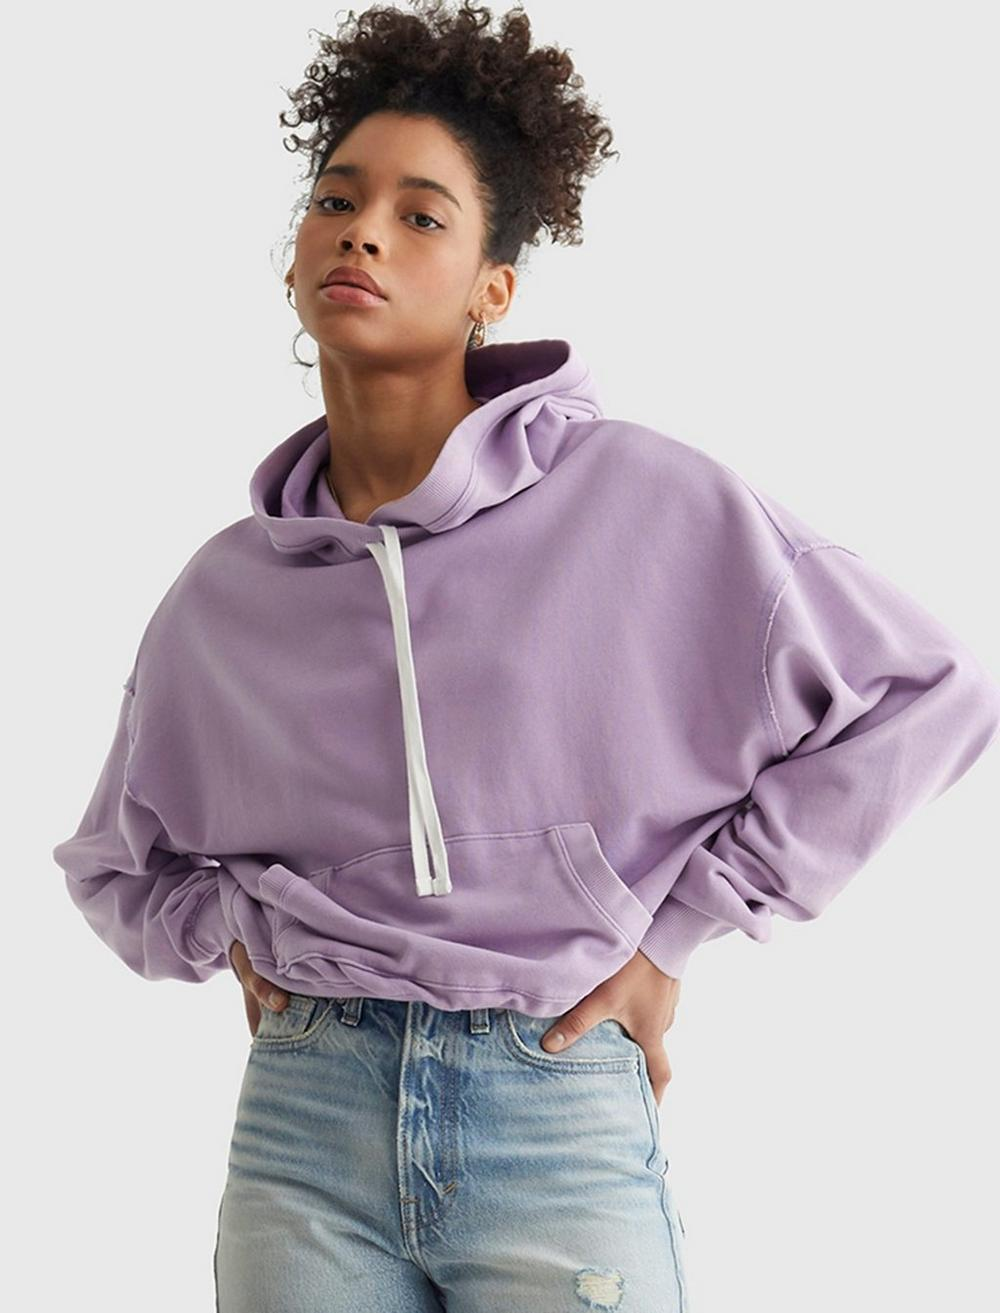 CHILL AT HOME HOODIE, image 1